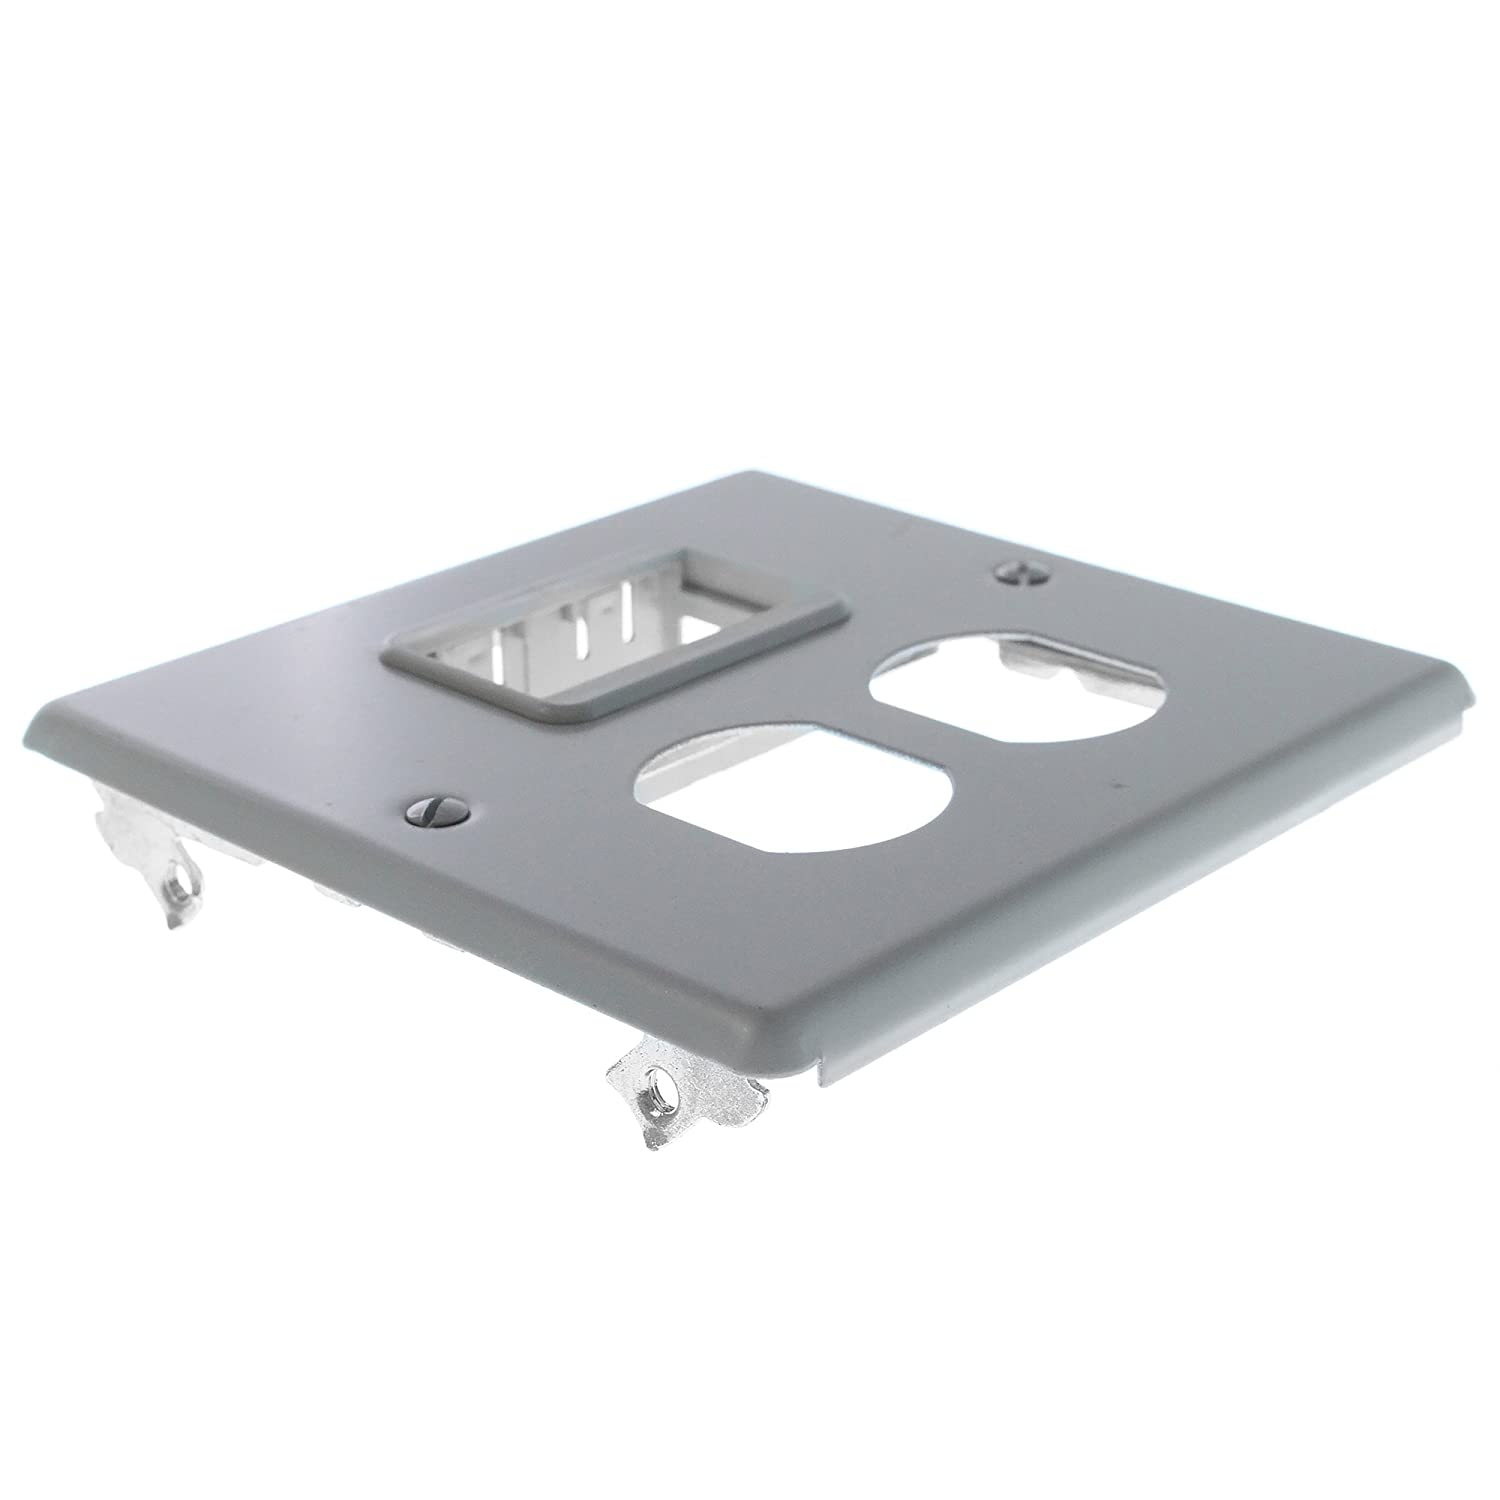 Amazon.com: Wiremold G4047Bs 2 Gang Gray Cover Plate 4000 Series ...